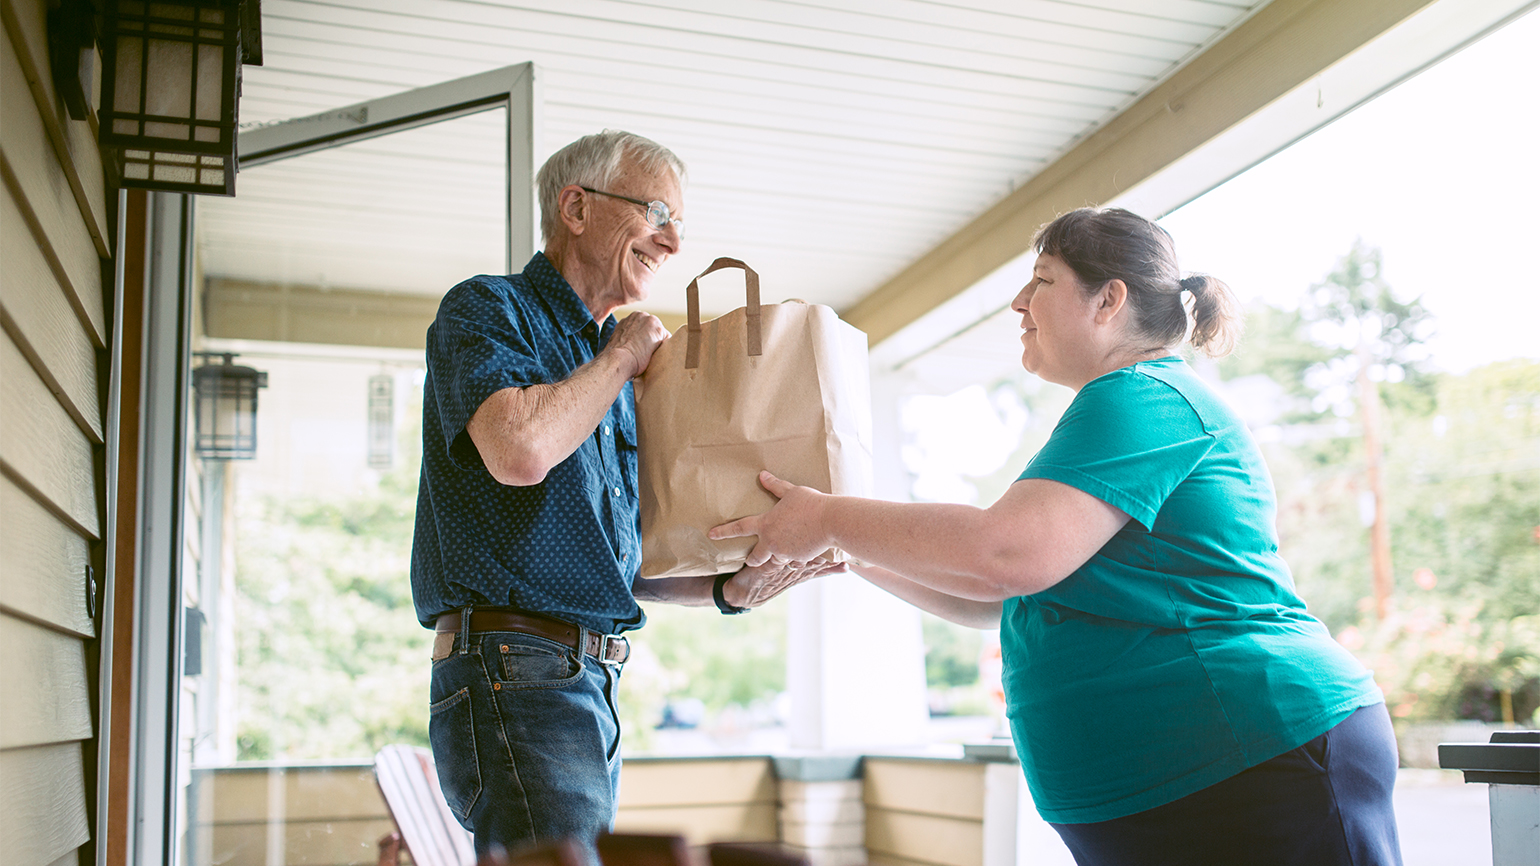 A woman brings her senior neighbor some groceries